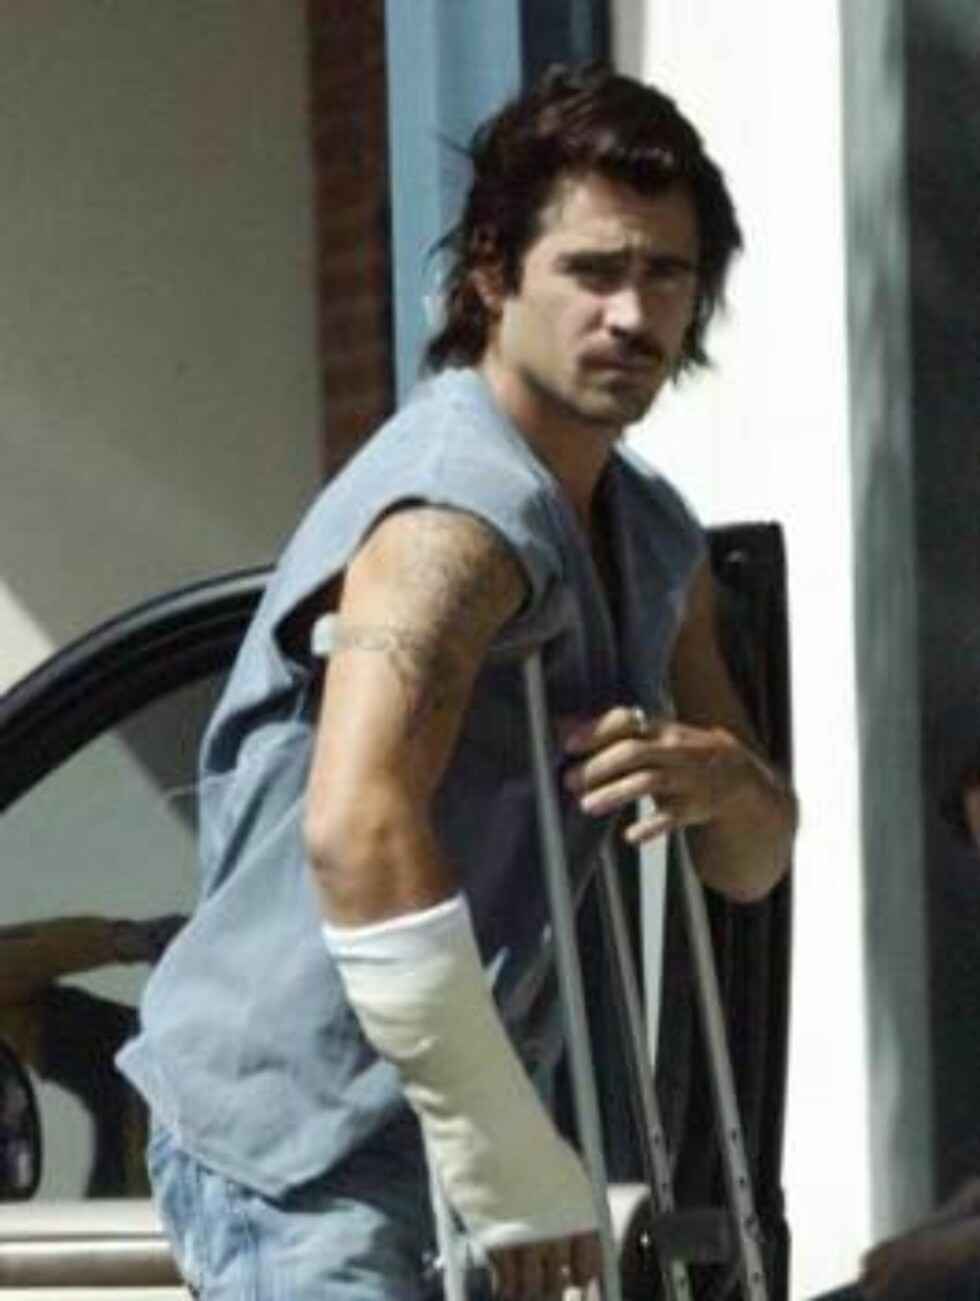 Colin Farrell hobbles to the hospital for a check-up on his broken leg and wrist.  The multiple injury hunk looked a little worse for wear sporting two casts and messy hair.  March 13, 2004.  Exclusive X17agency.com / ALL OVER PRESS Foto: All Over Press